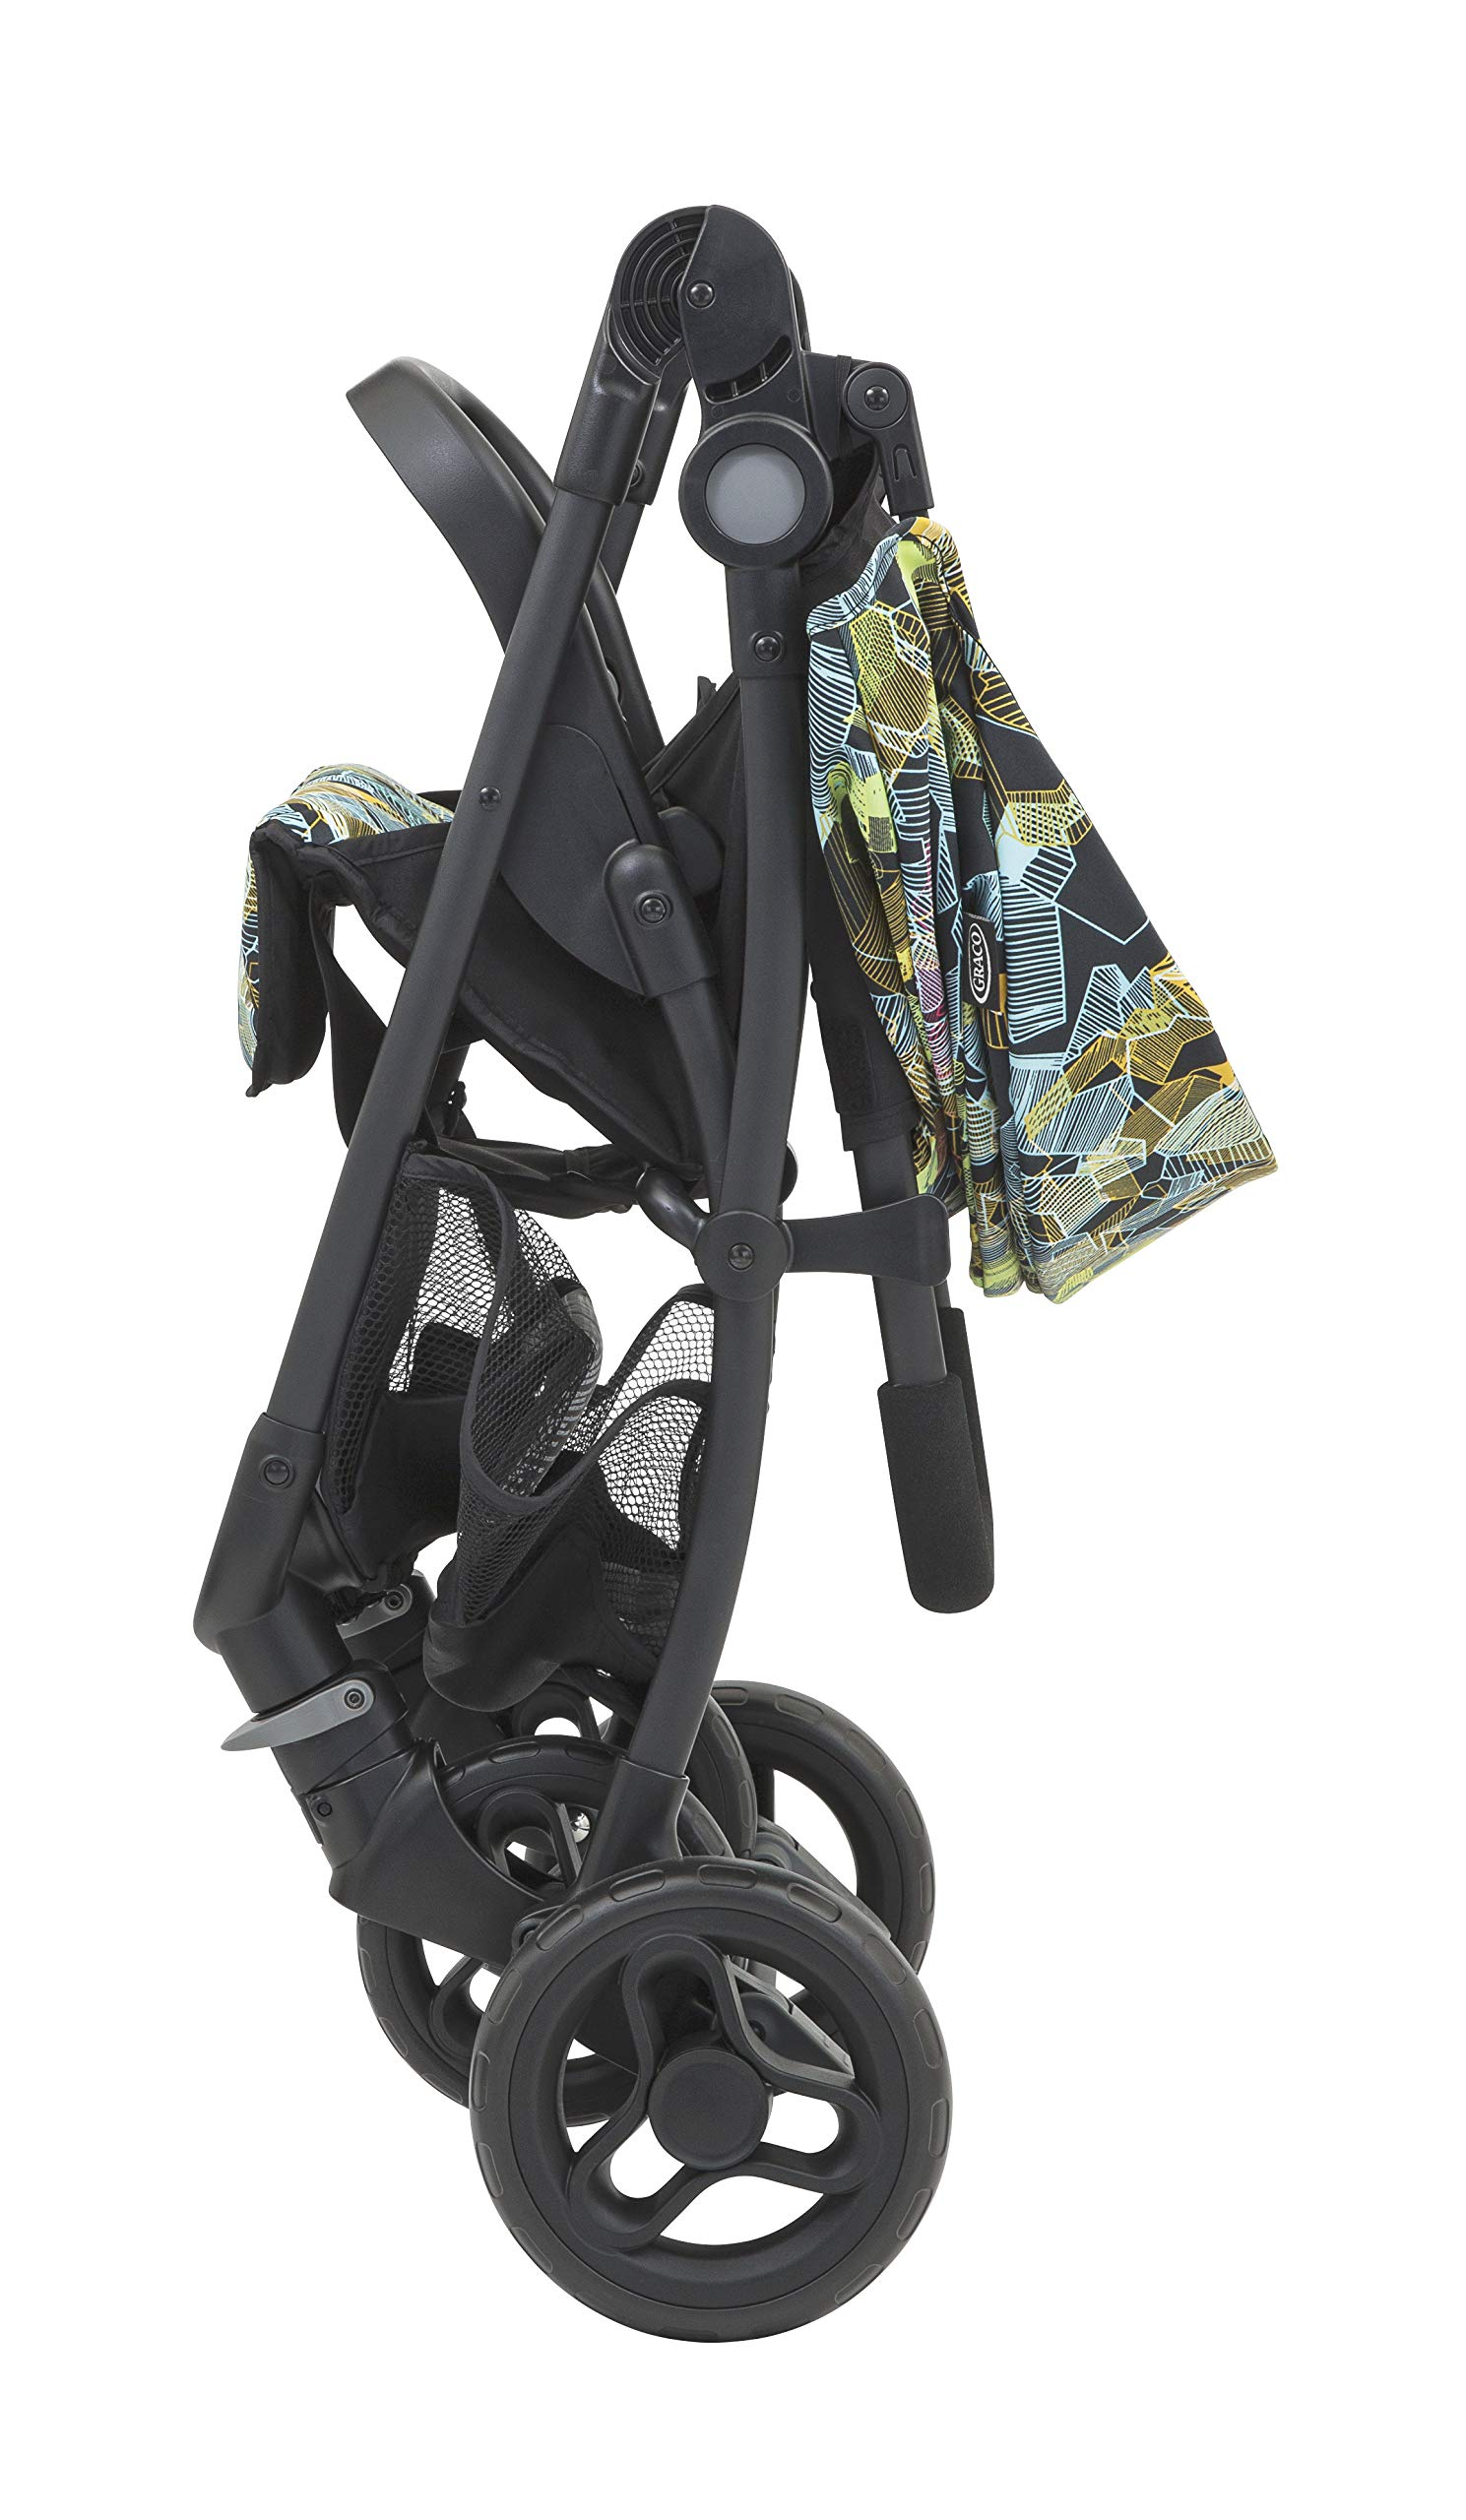 Graco Breaze Lite Stroller, Kaleidoscope Graco From birth to 3 years approx. (0-15kg) Lightweight at only 6.5kg Click connect travel system compatible with graco snugride/snugessentials isize infant car seats 5